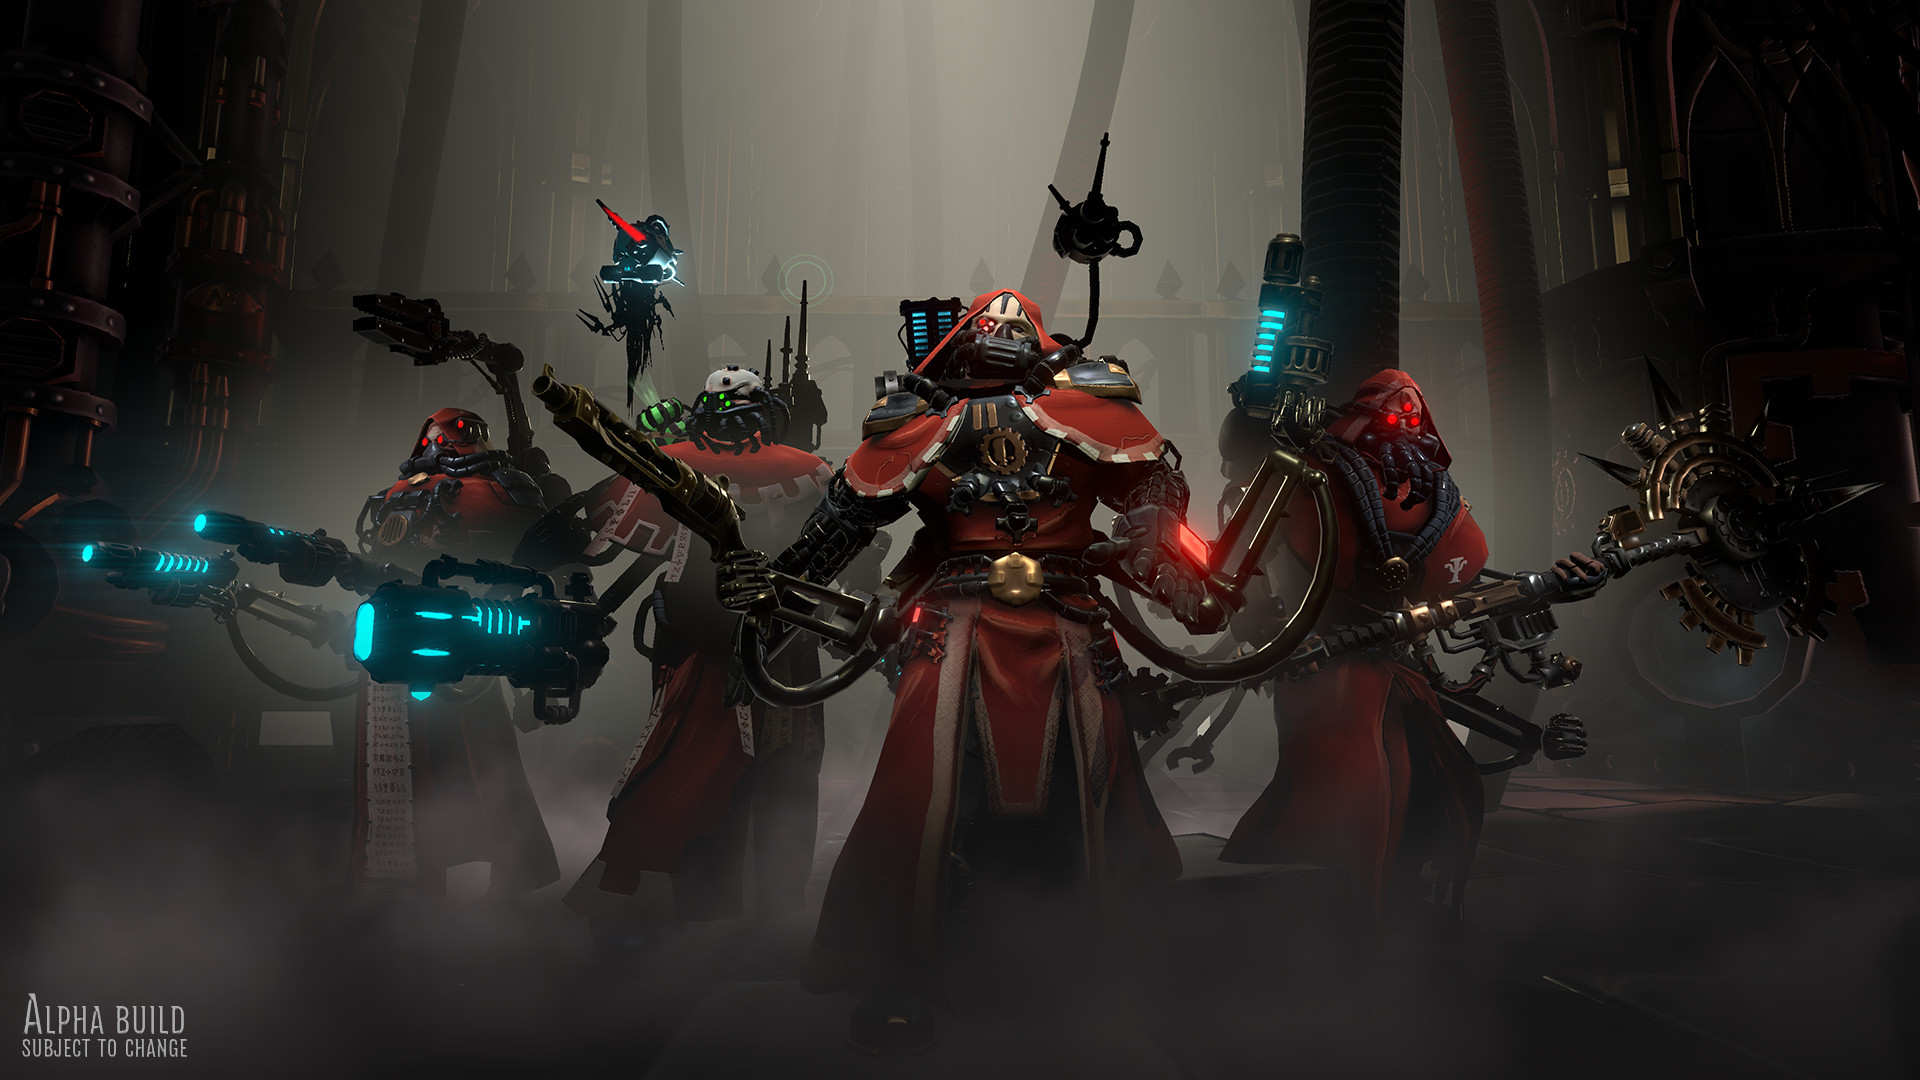 Warhammer 40,000: Mechanicus Is A New Turn-Based Tactical Game Due